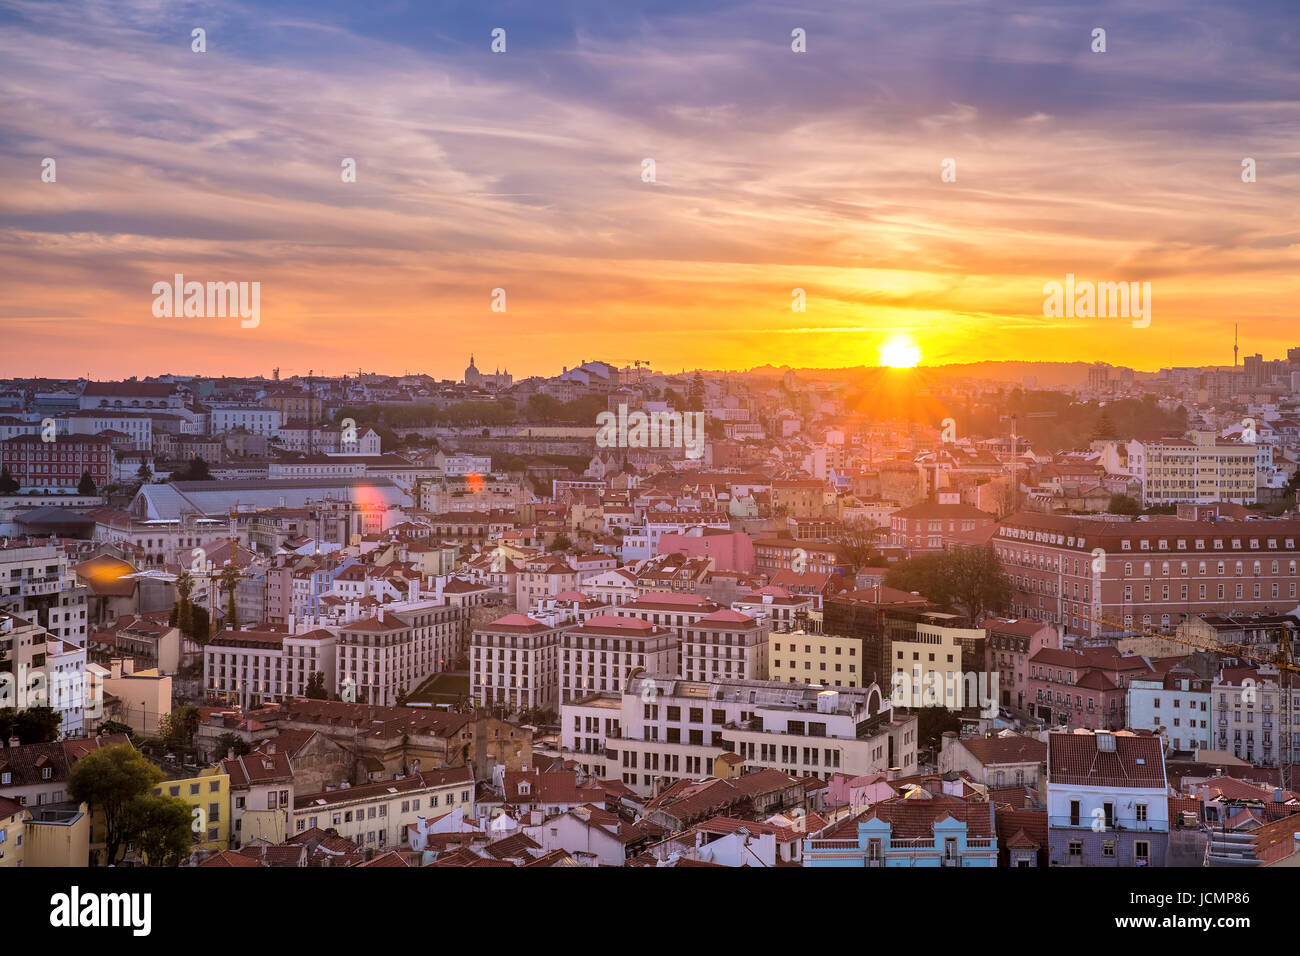 Historical centre of Lisbon at sunset, Portugal - Stock Image